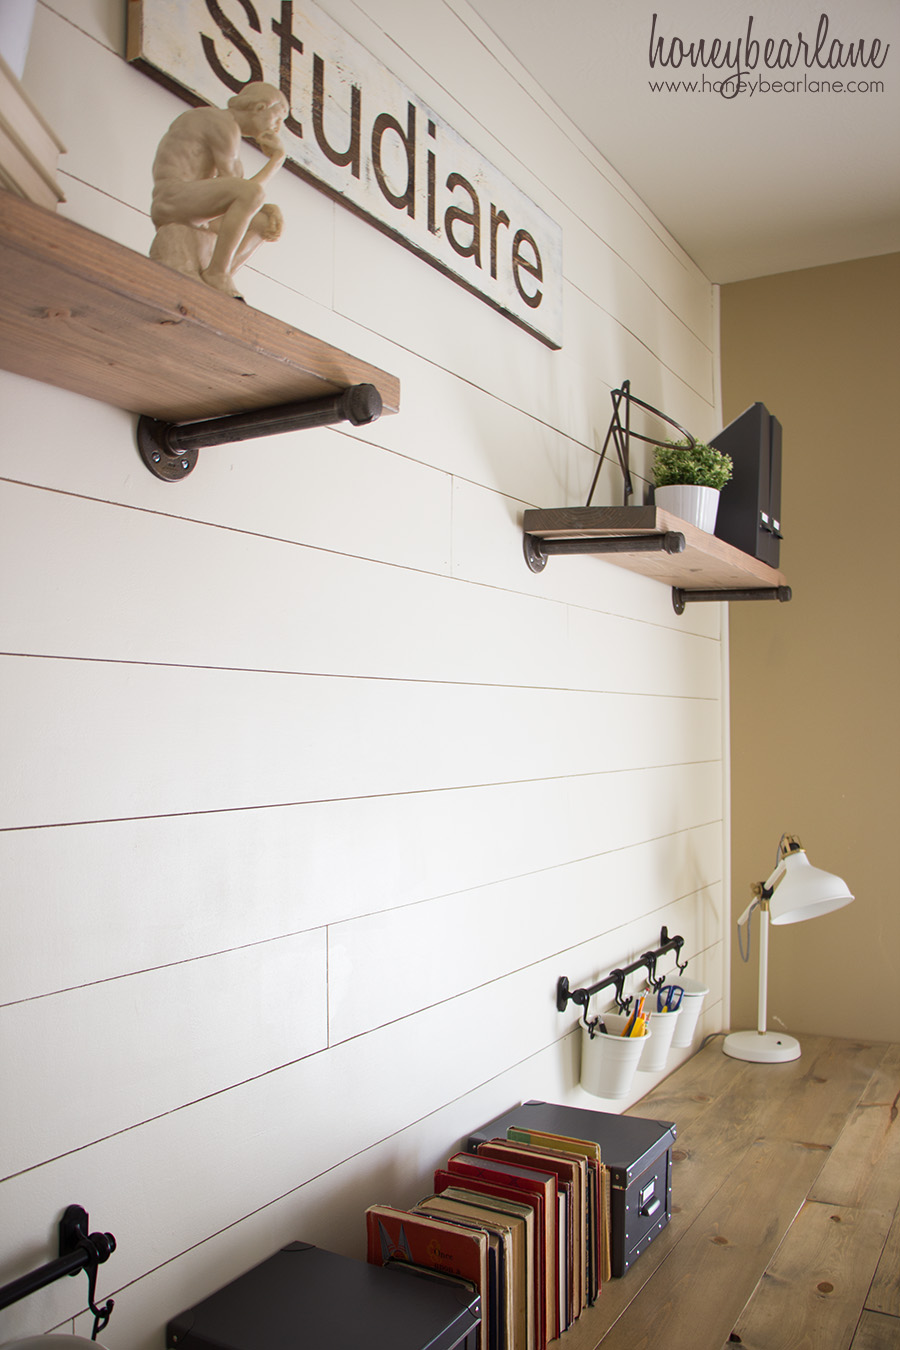 Shiplap Wall For Under 50 Honeybear Lane